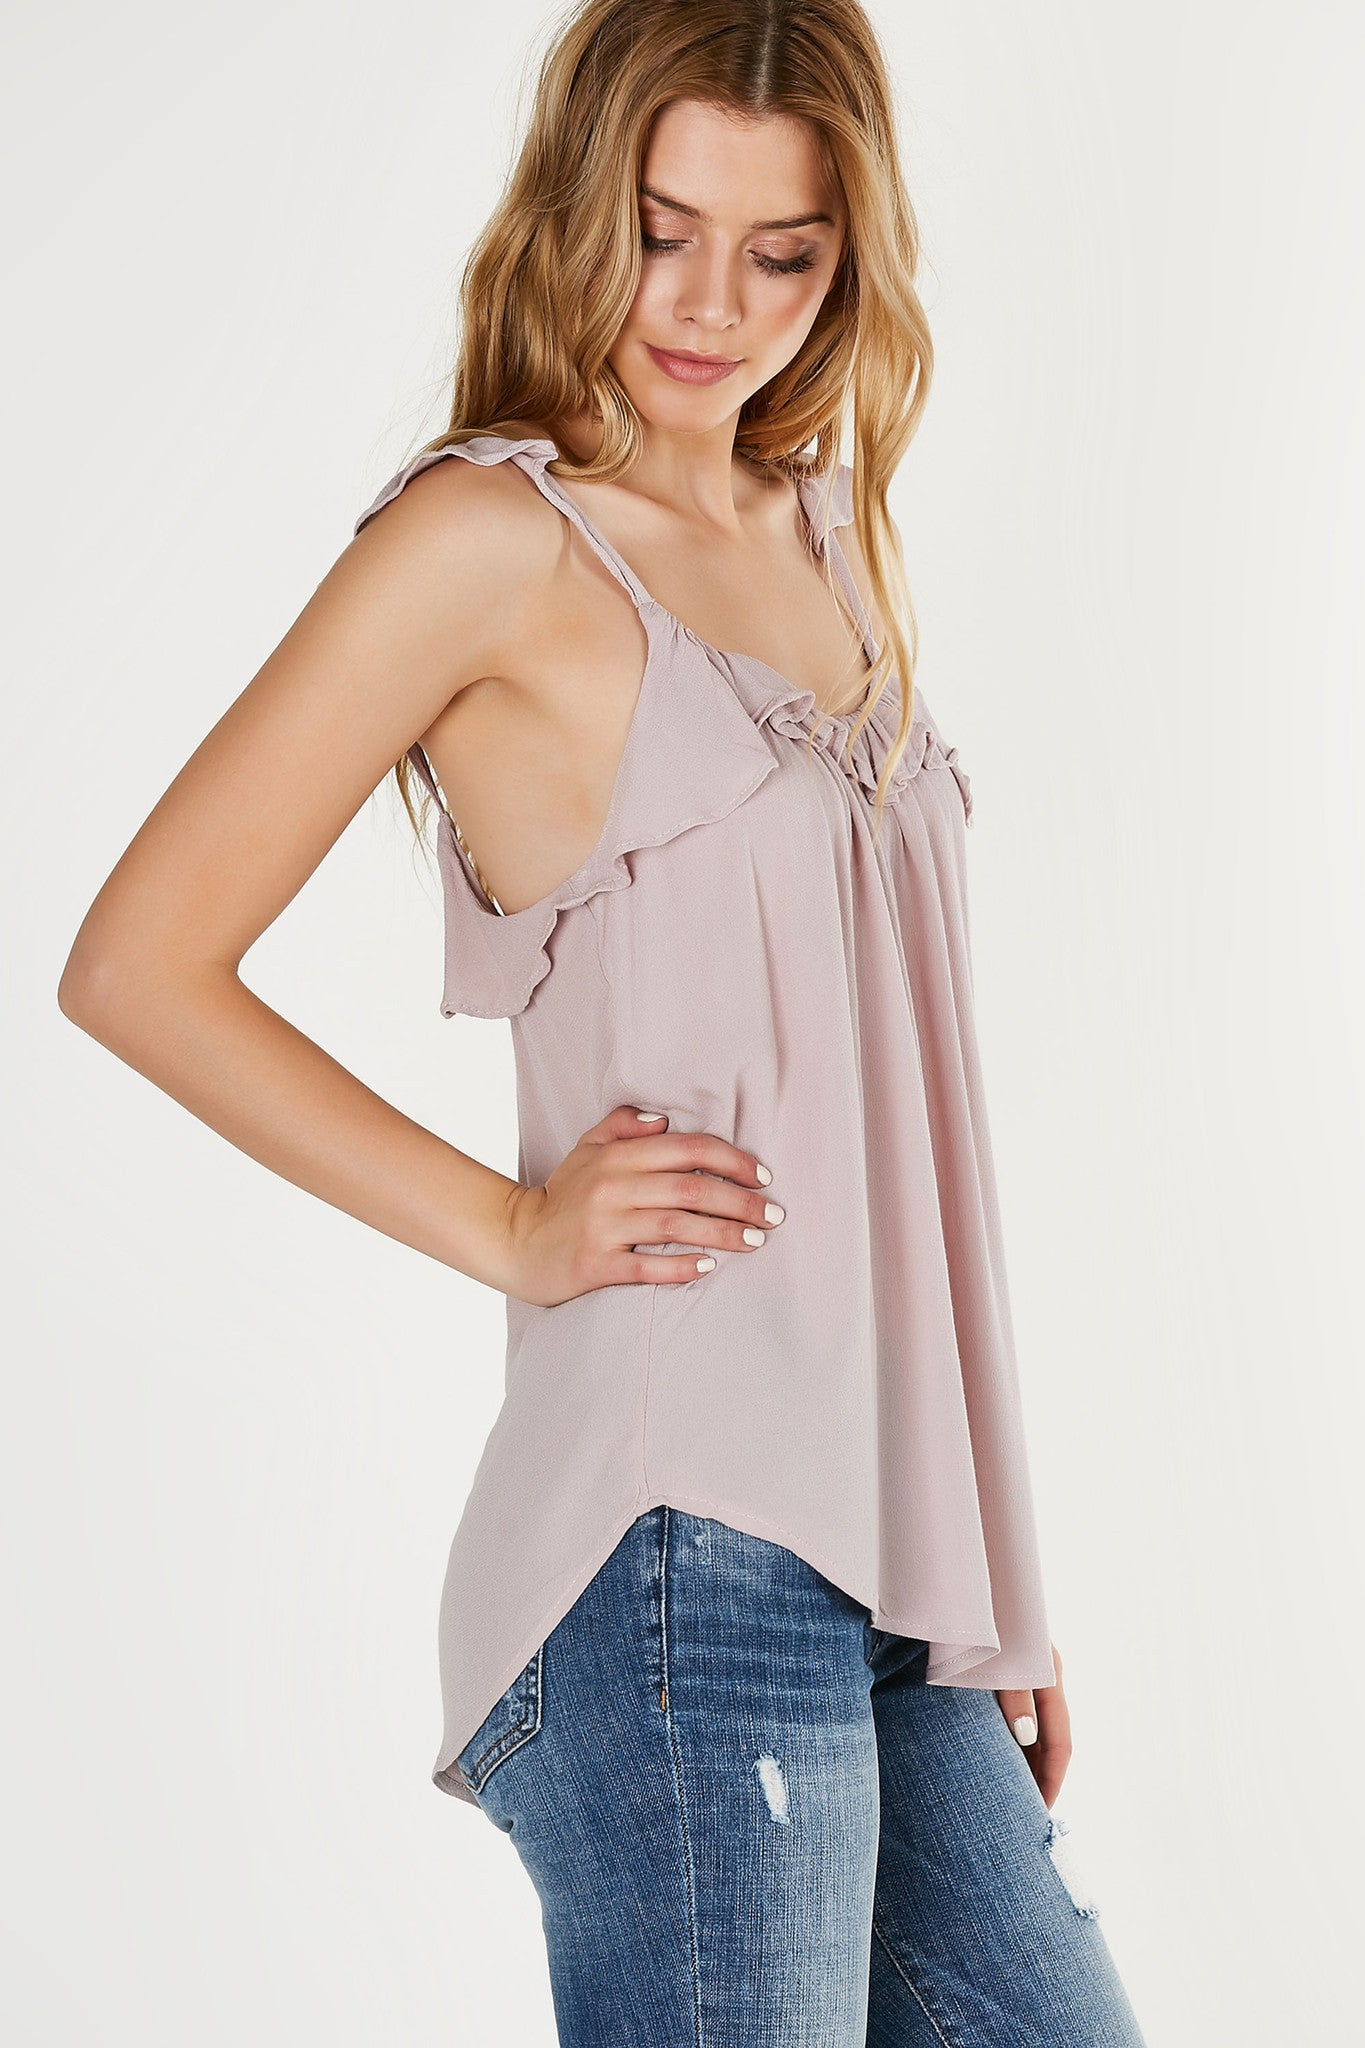 Flirty sleeveless top made of lightweight material with flowy fit. Ruffle detailing throughout neckline and shoulder straps.